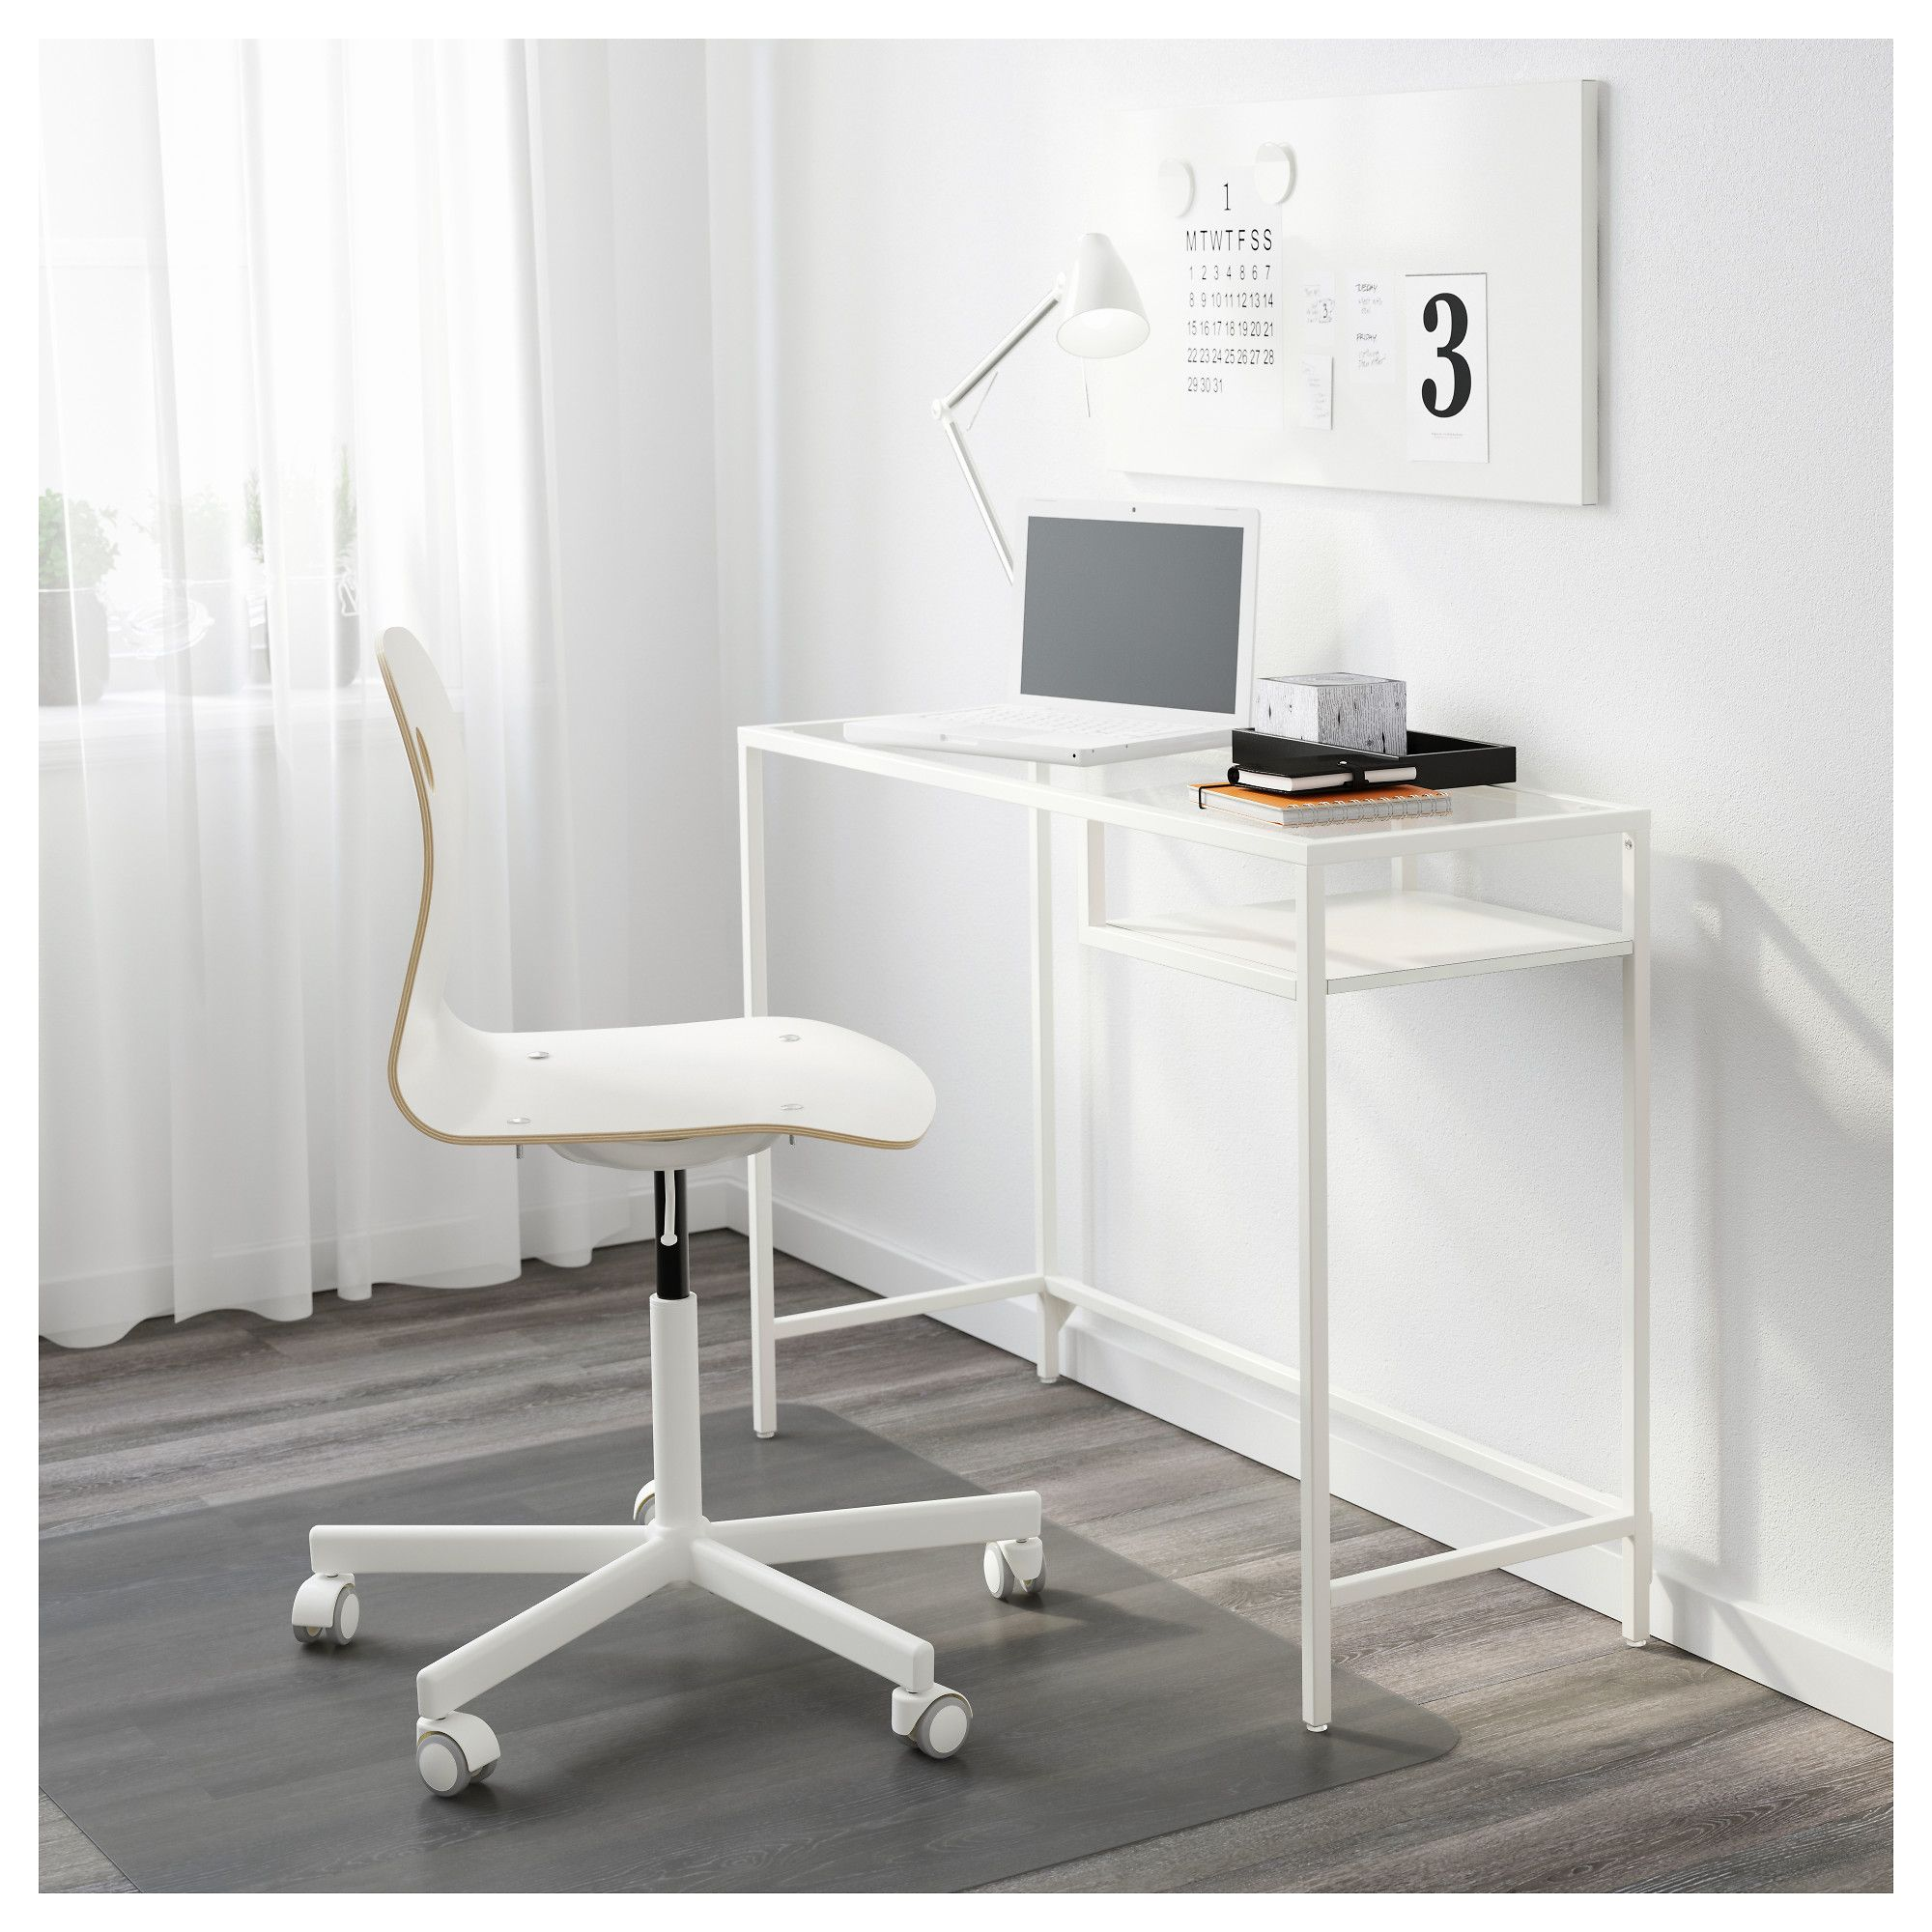 ca en laptop black catalog brown ikea vittsj glass products stand desk